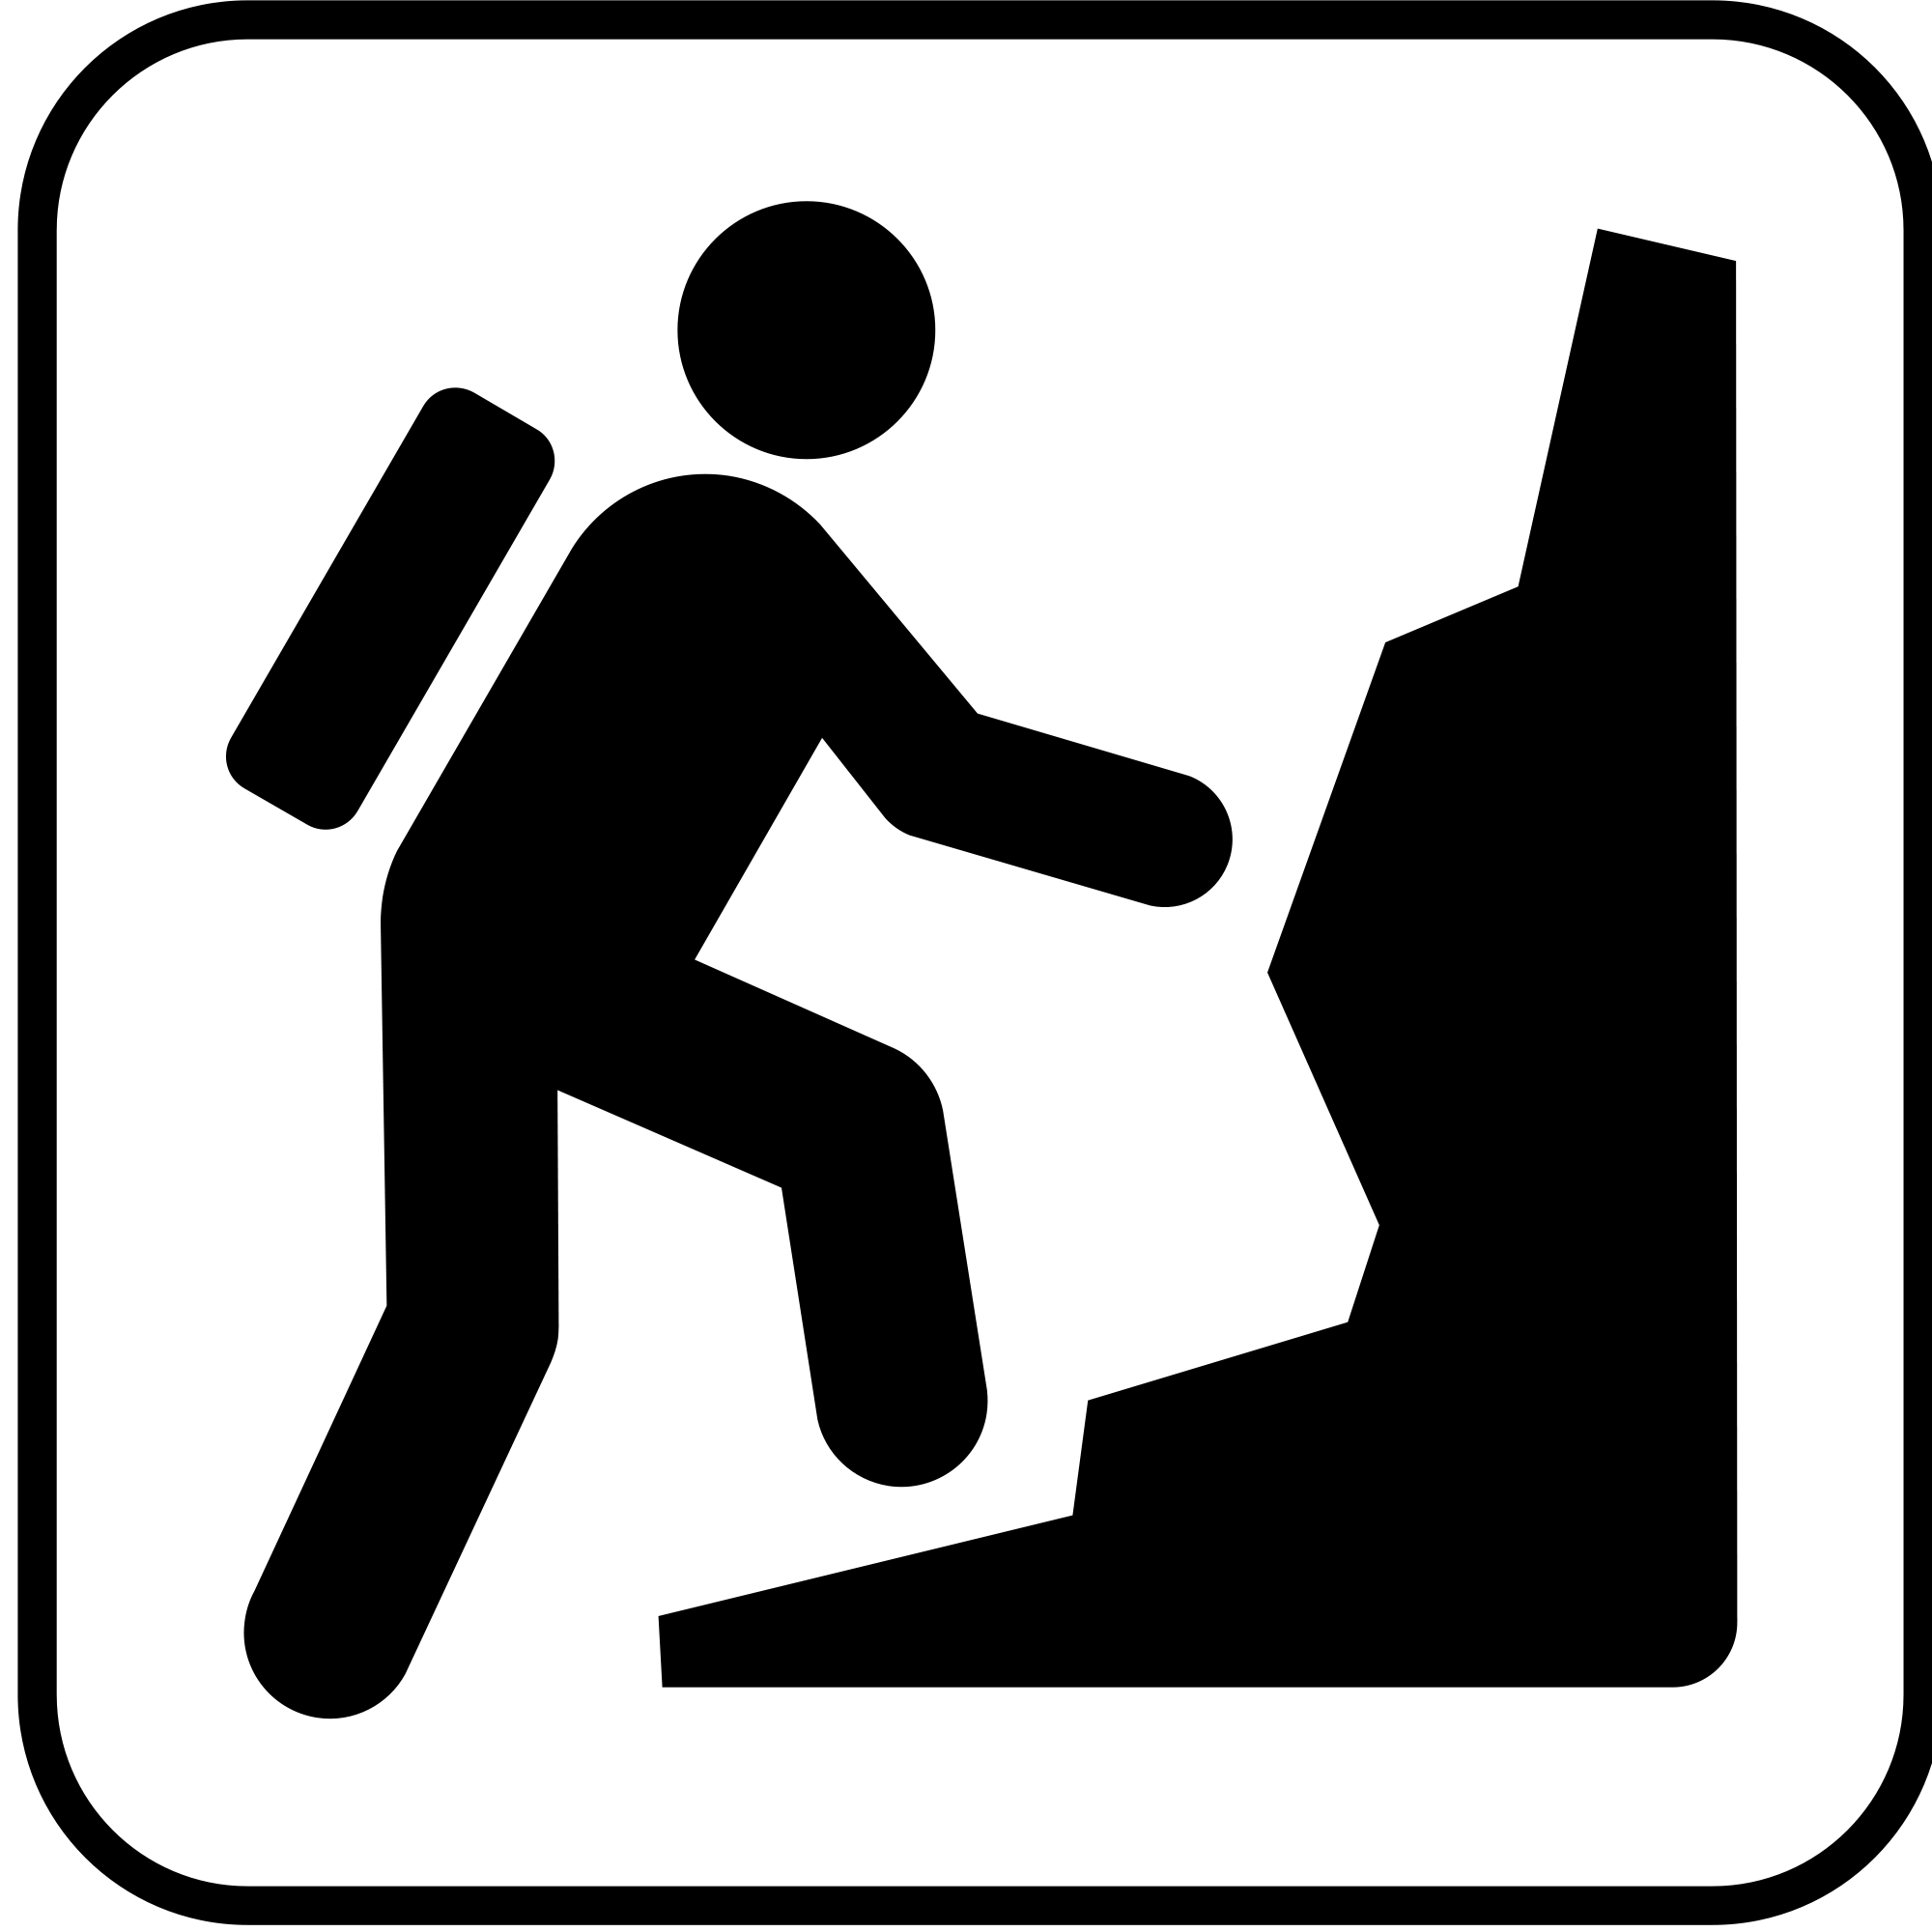 Climber clipart mountaineering. File pictograms nps land